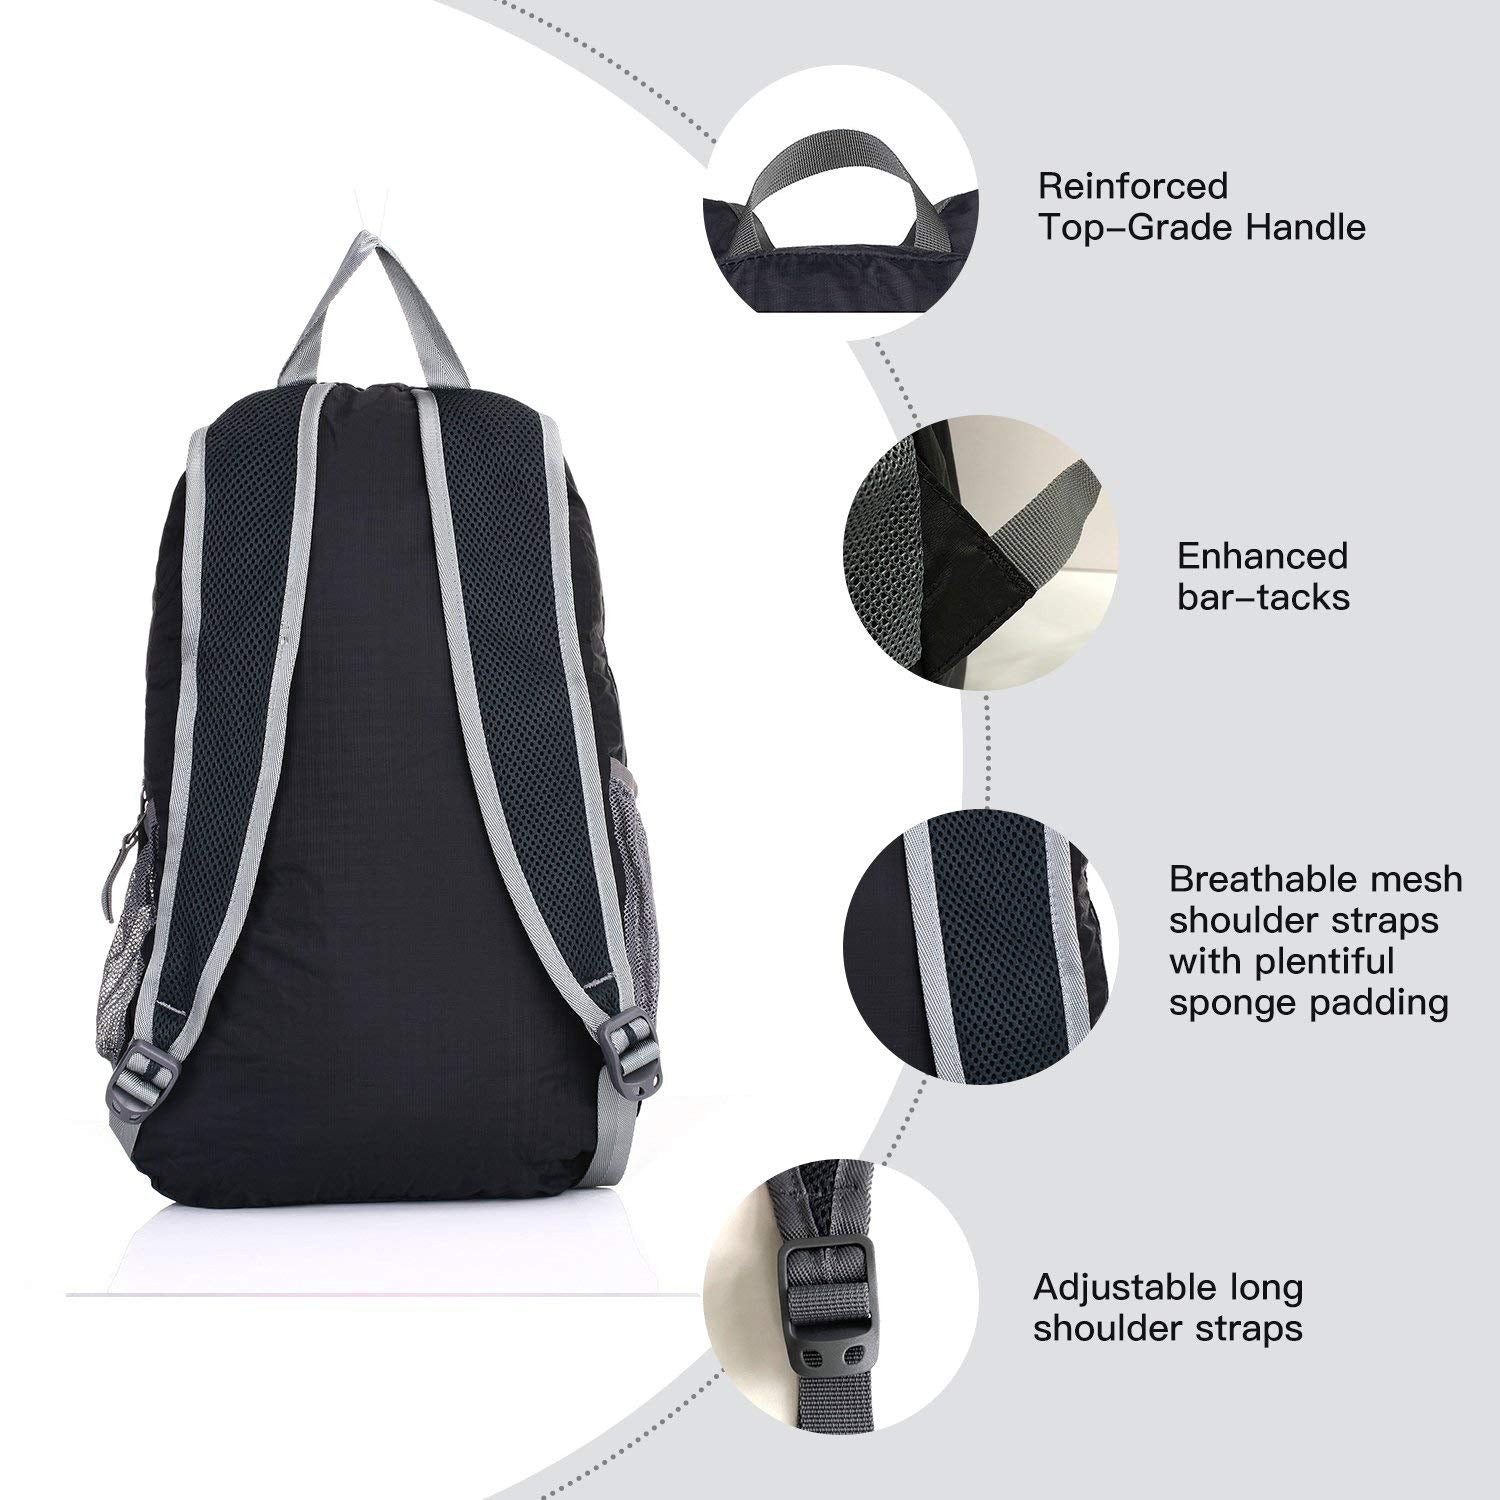 The Ultra Lightweight Backpack 33L